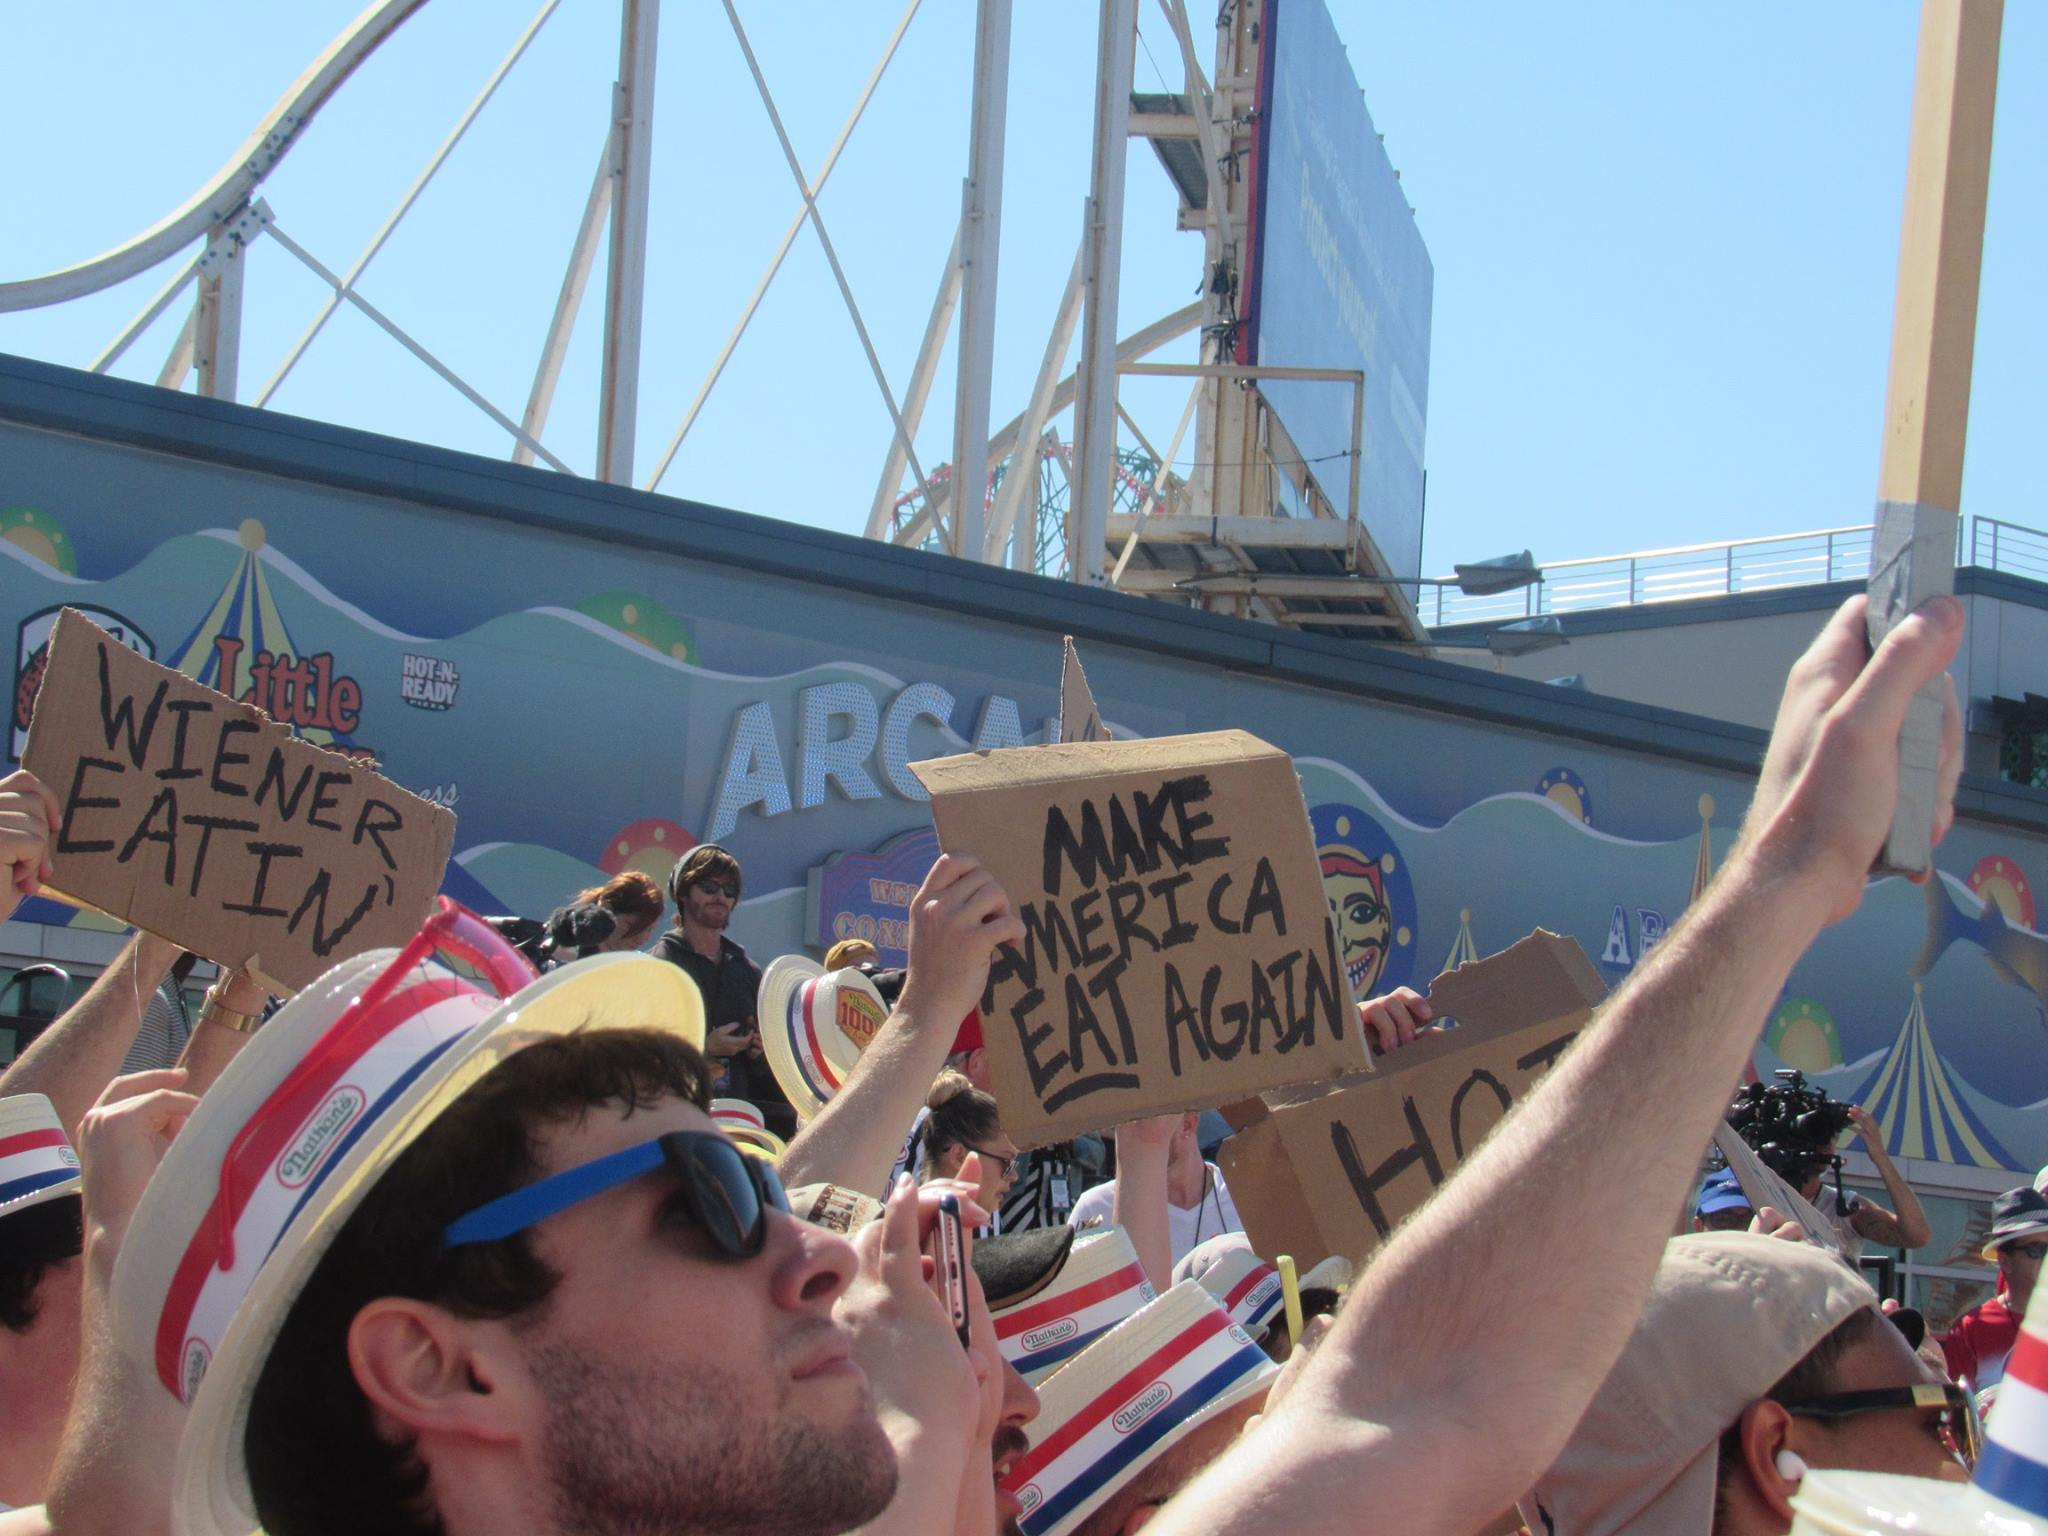 """An event-goer holds a sign that says """"MAKE AMERICA EAT AGAIN"""""""